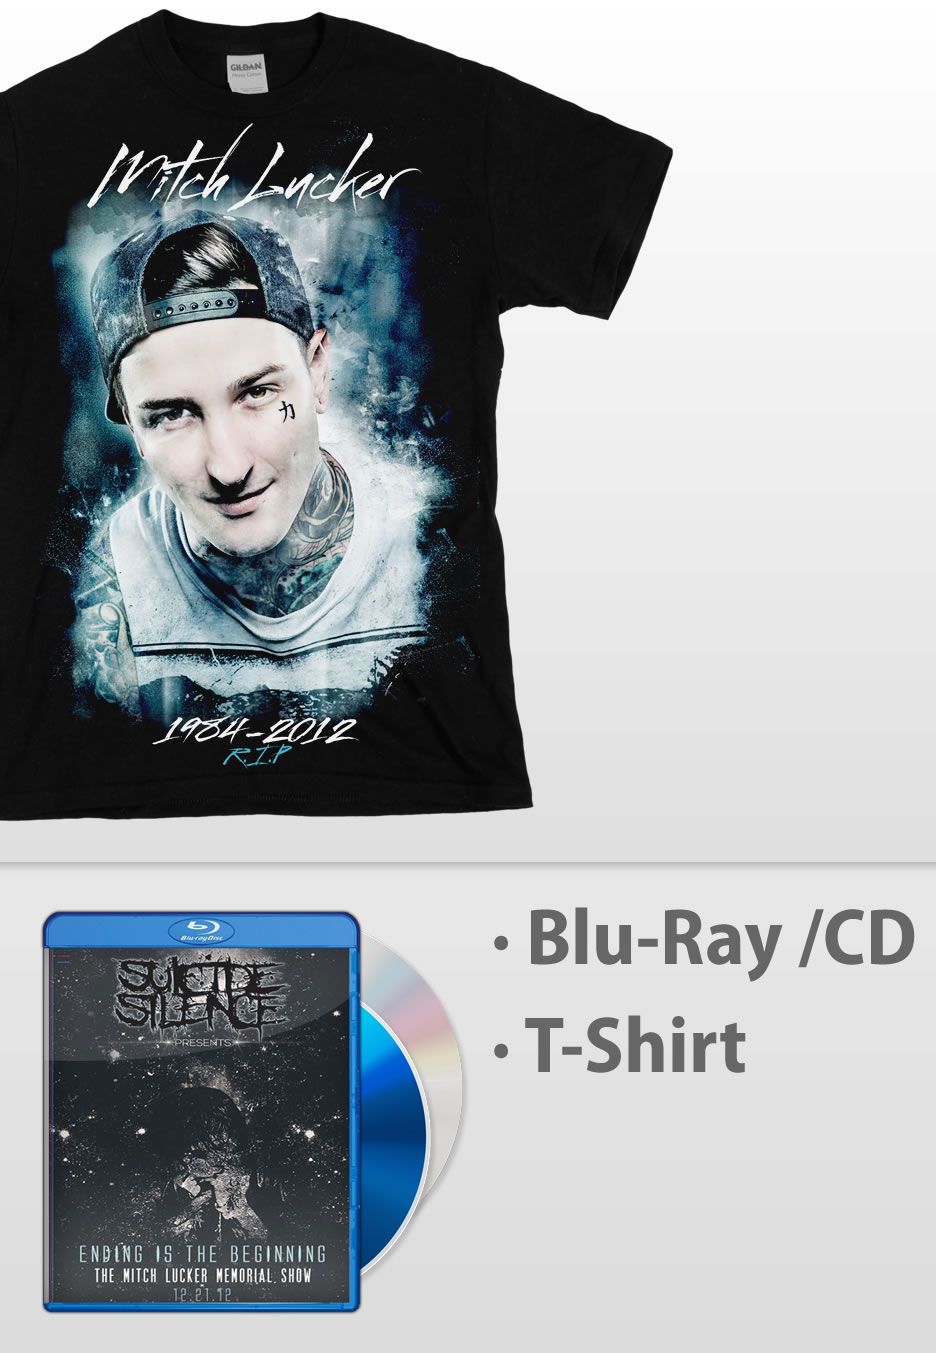 473eebee8 ... Ending Is The Beginning The Mitch Lucker Memorial Show Blu Ray CD -  Special Pack - CDs